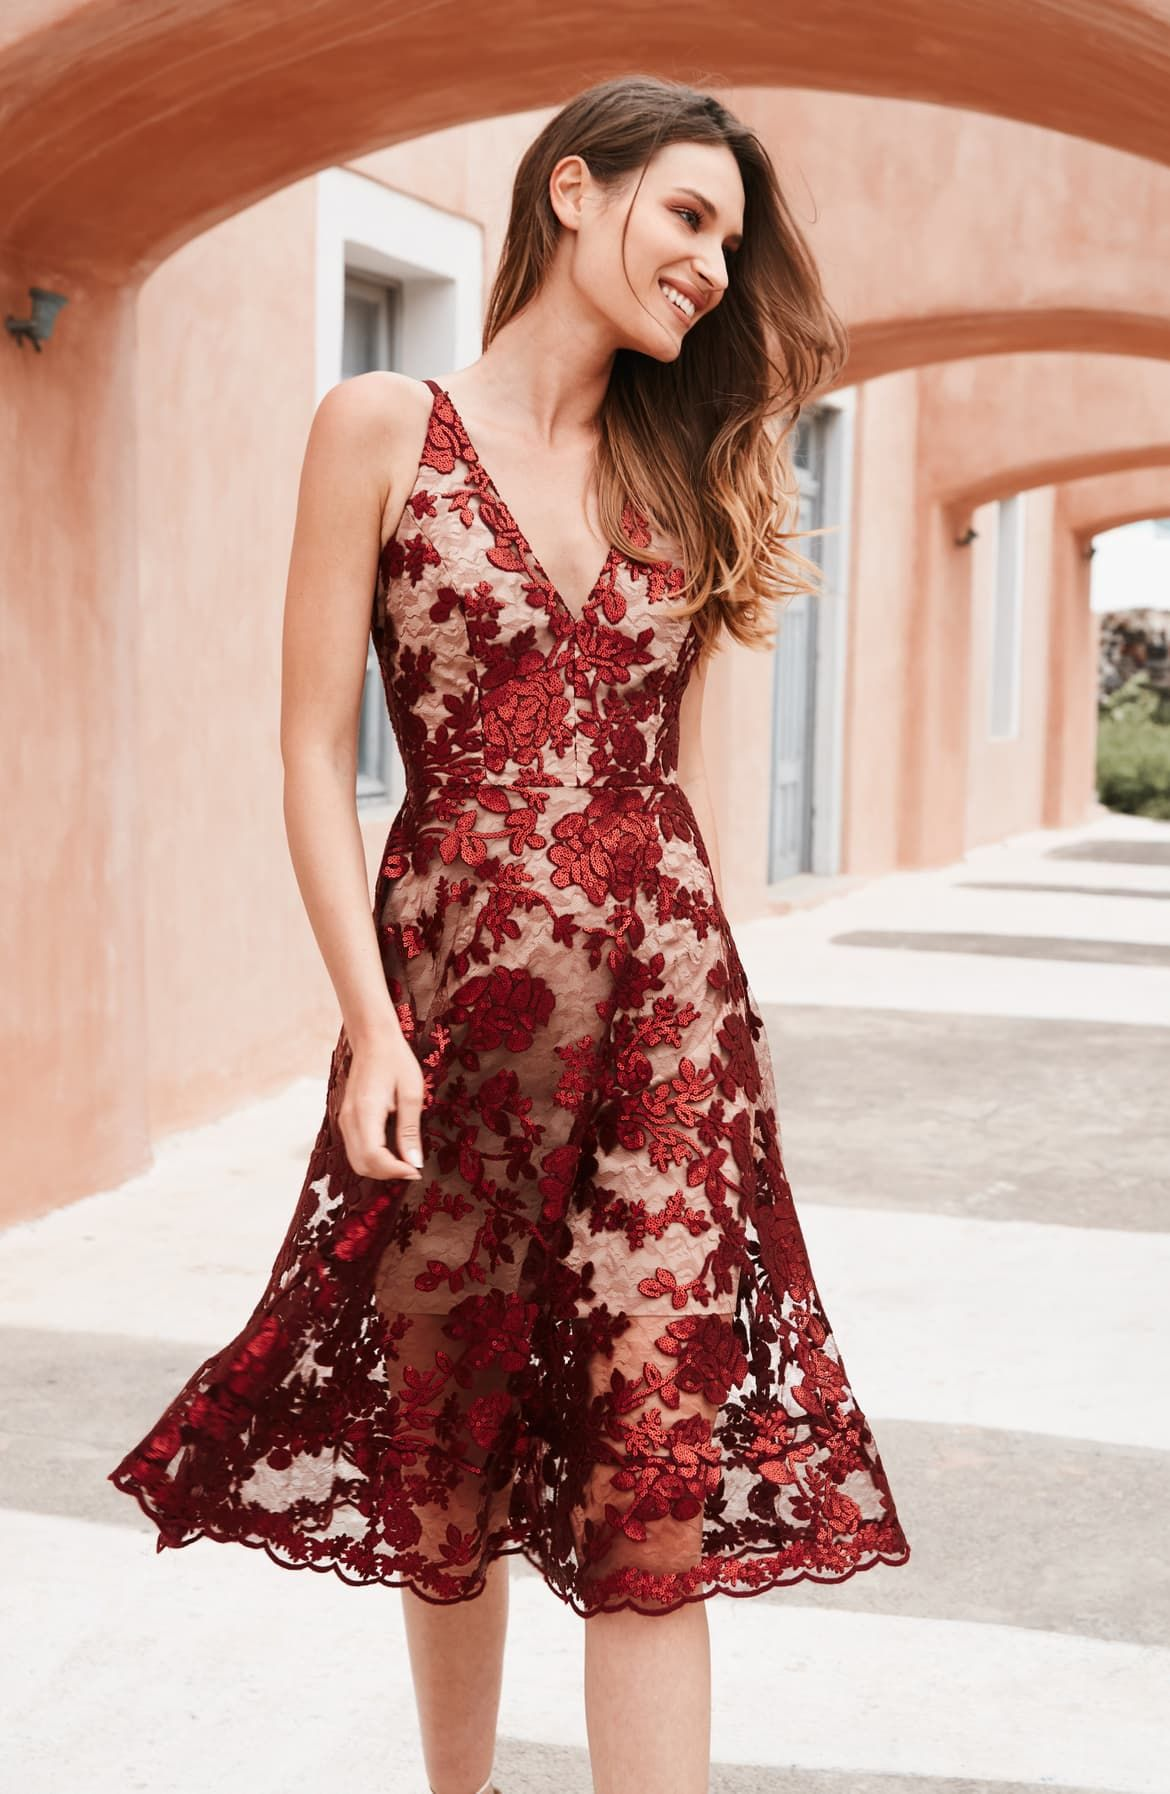 Fall Wedding Guest Dresses Dress For The Wedding Wedding Guest Dresses Long Wedding Guest Dress Fall Wedding Guest Dress [ 1794 x 1170 Pixel ]